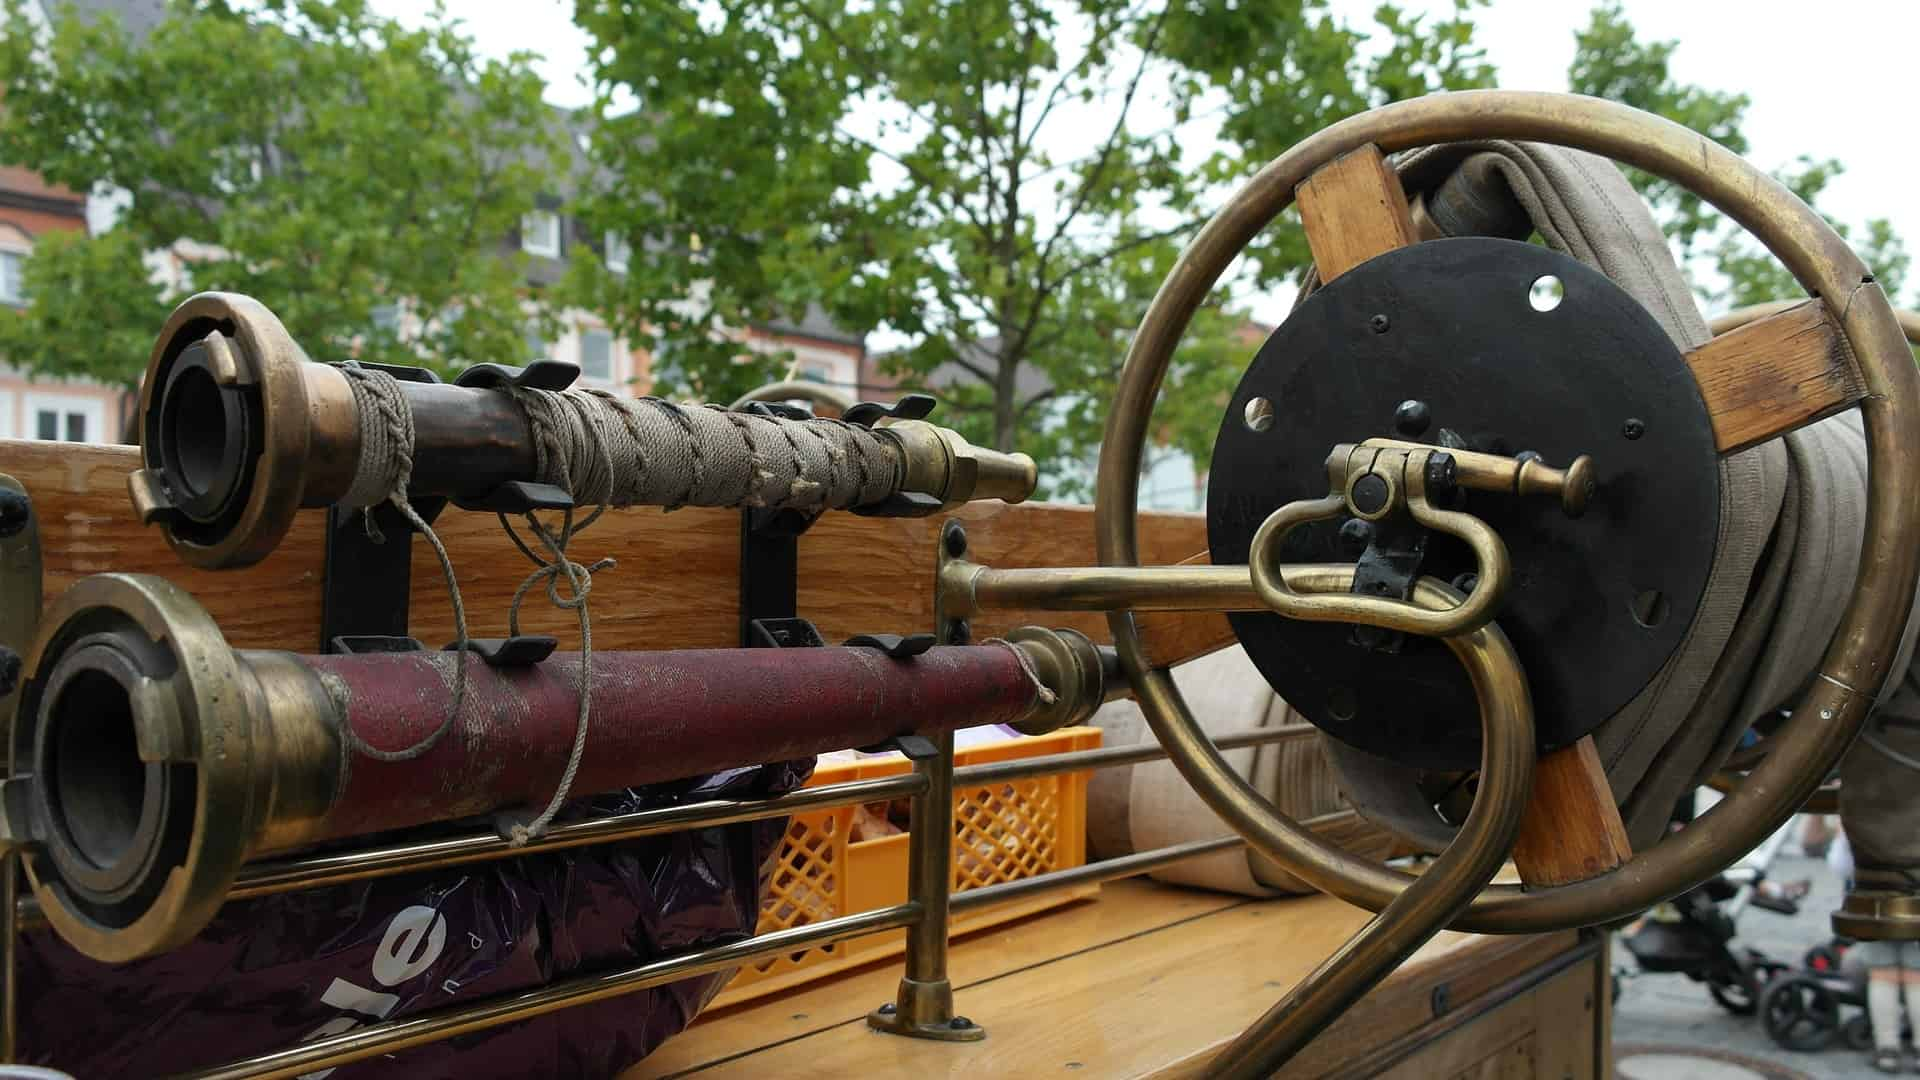 A Brief History of Fire Hoses